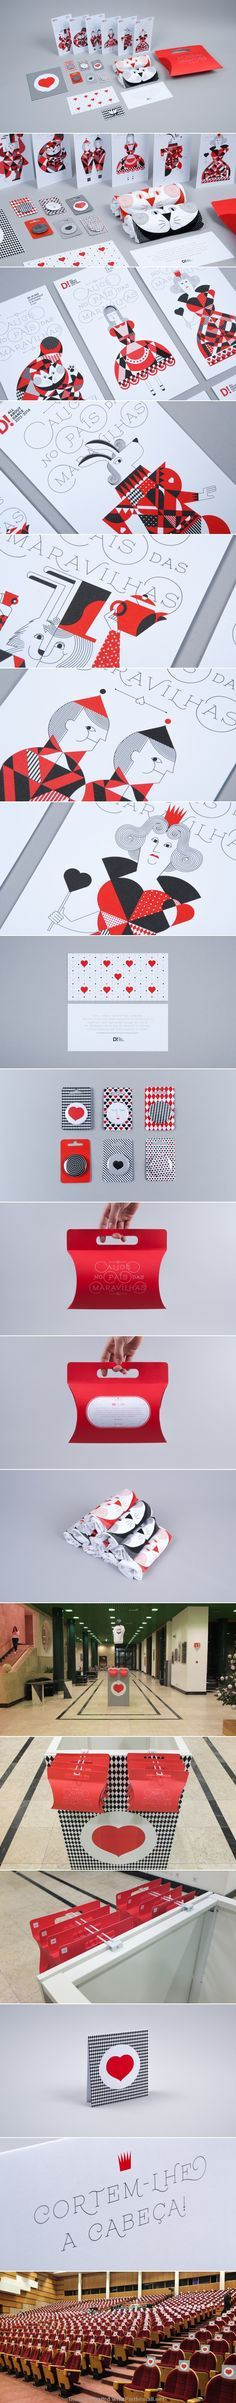 Popular Alice in Wonderland all about dance #identity #packaging #branding curated by Packaging Diva PD created via https://www.behance.net/gallery/Alice-no-Pais-das-Maravilhas/14469157